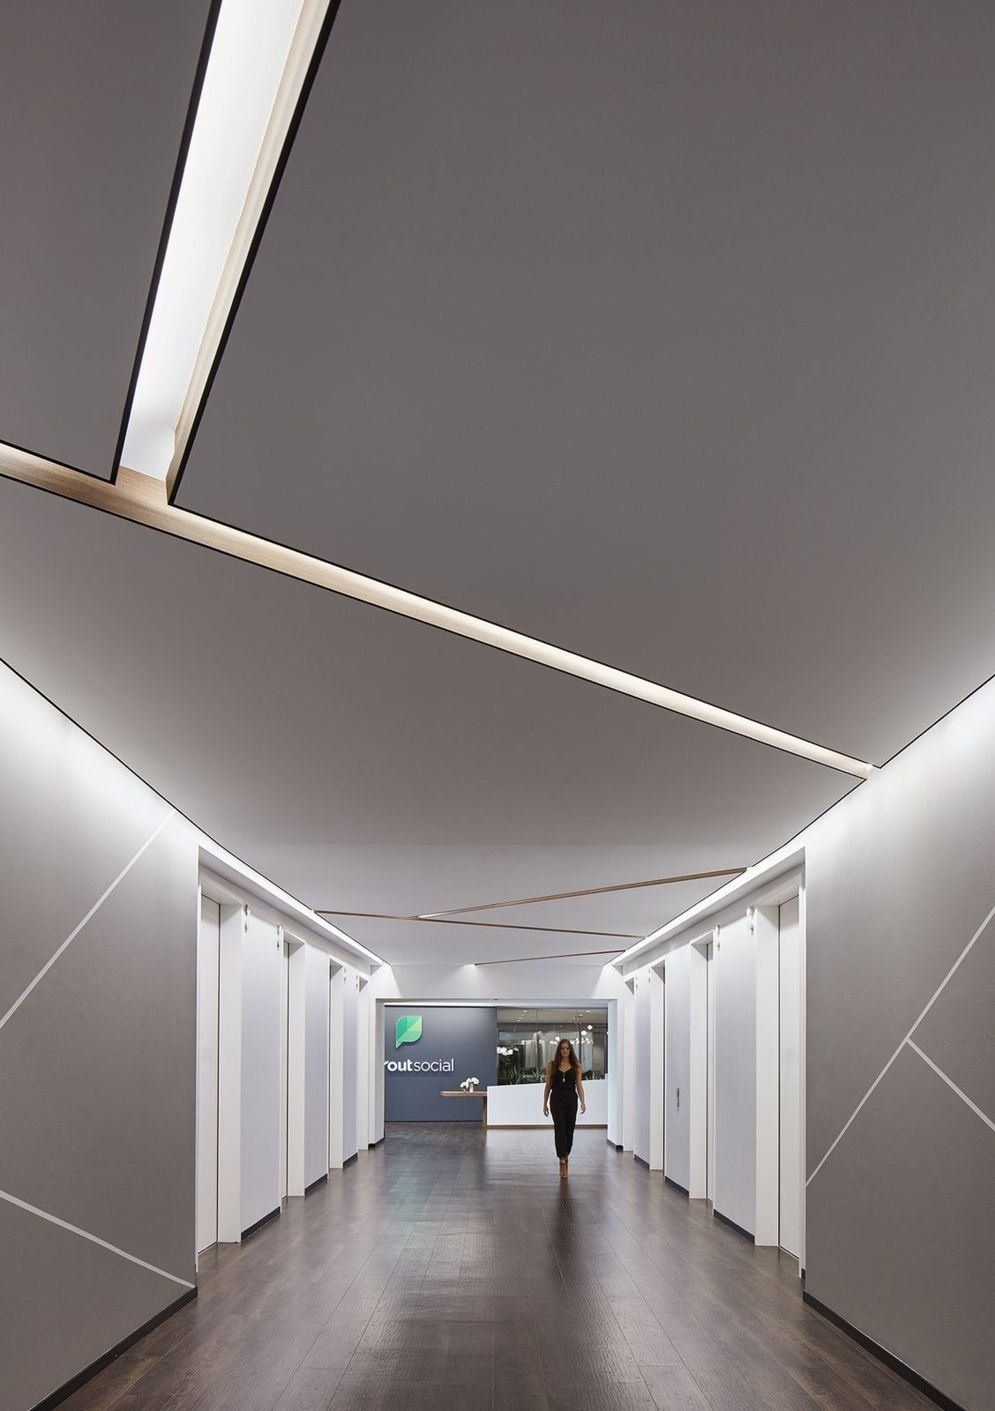 Amazing office interior ideas with unique and unconventional false ceiling designs Image 9